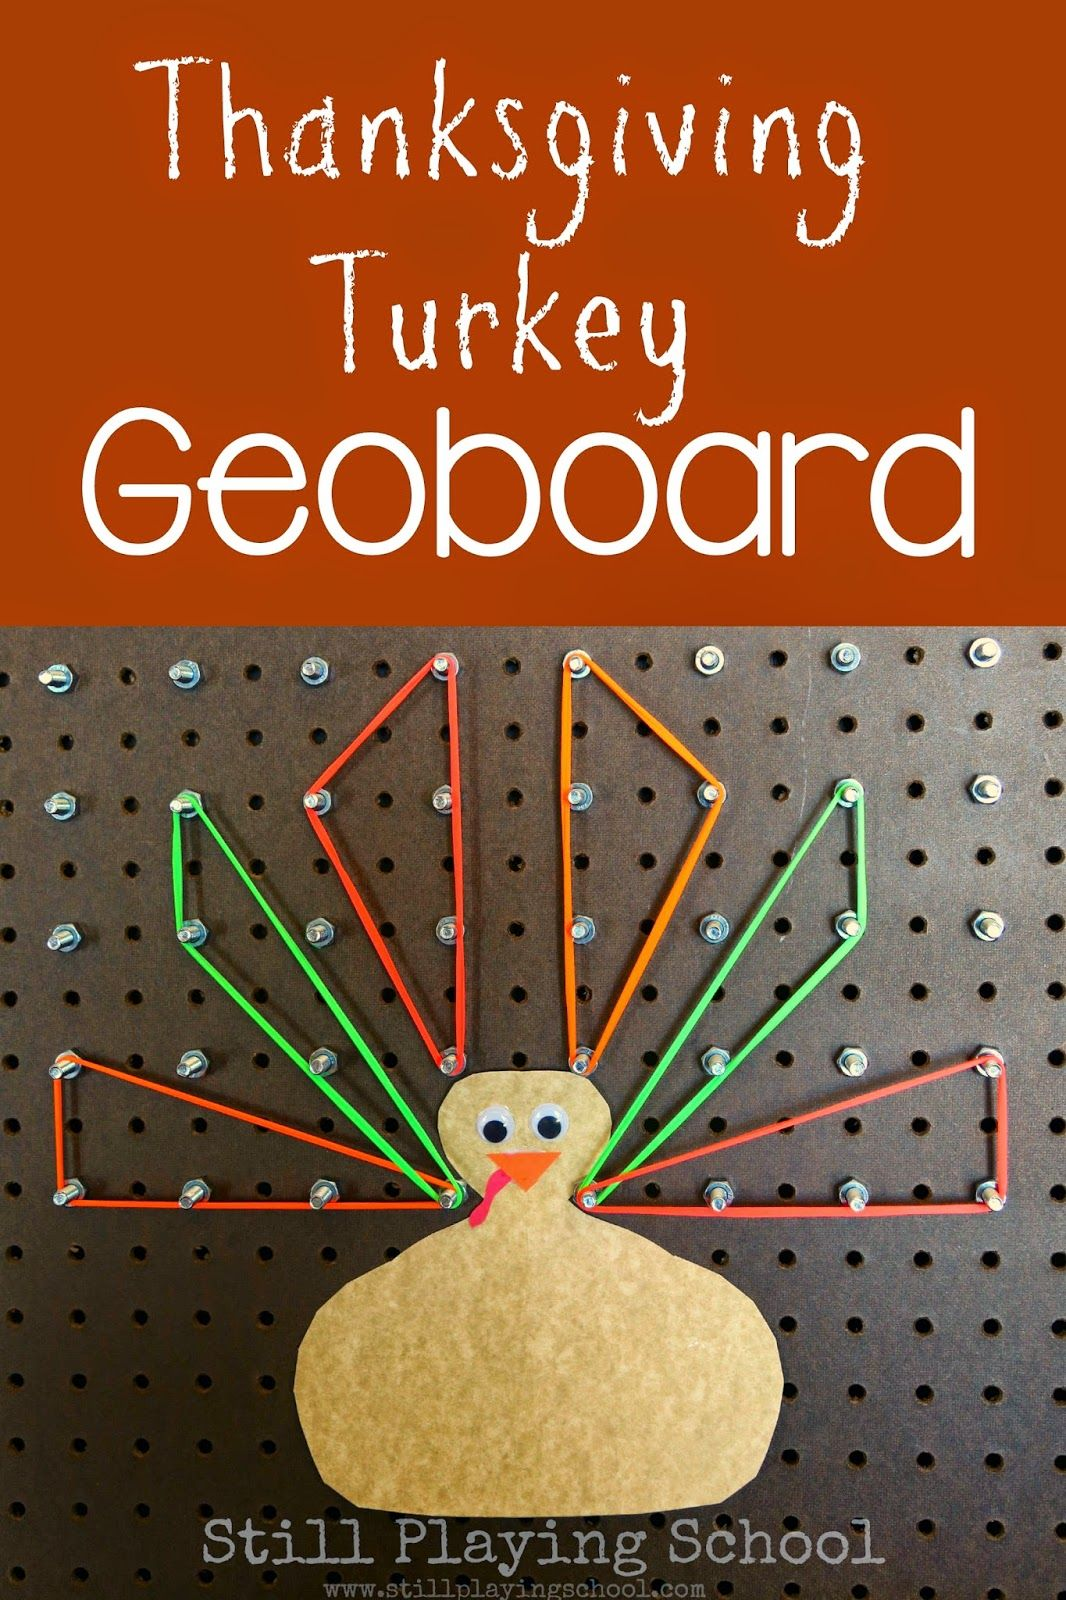 Thanksgiving themed geoboard activity for kids to build a turkey while working on math concepts